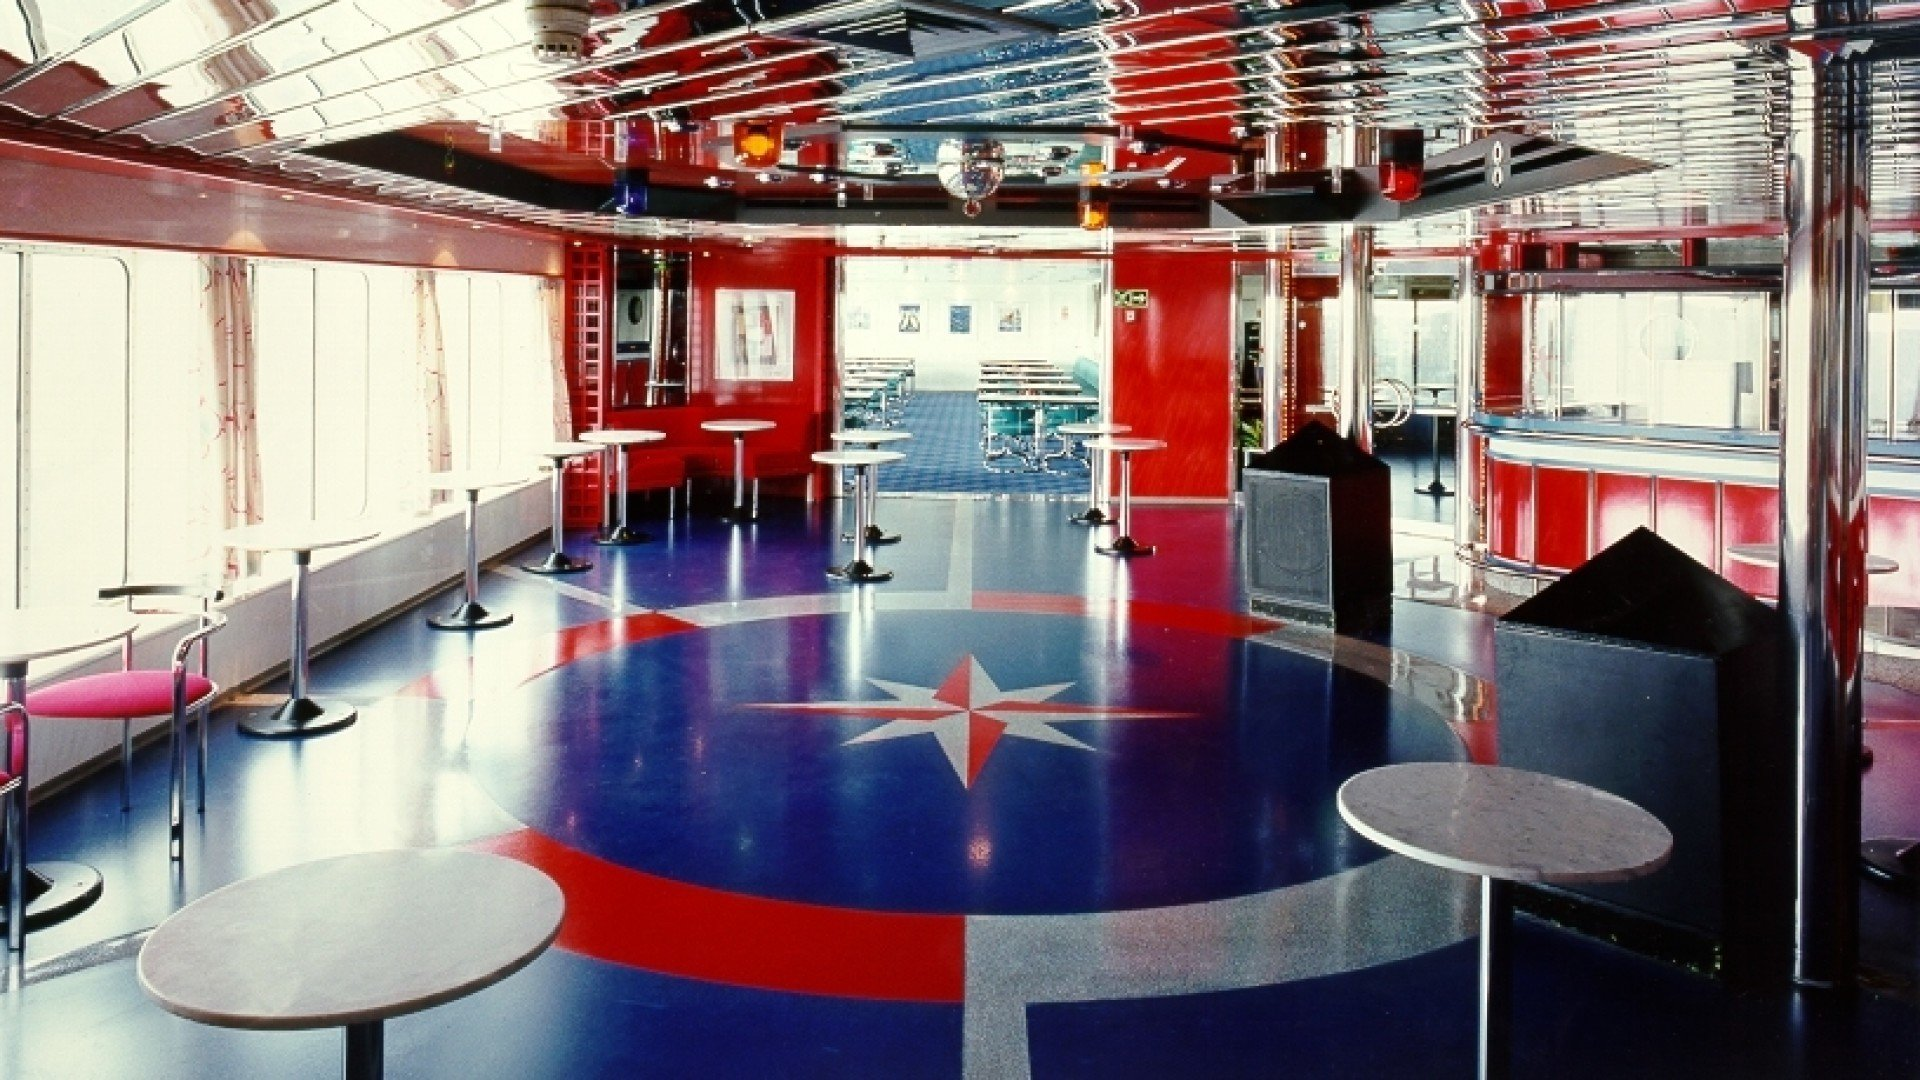 Ms Olau Hollandia Bolideck 2002